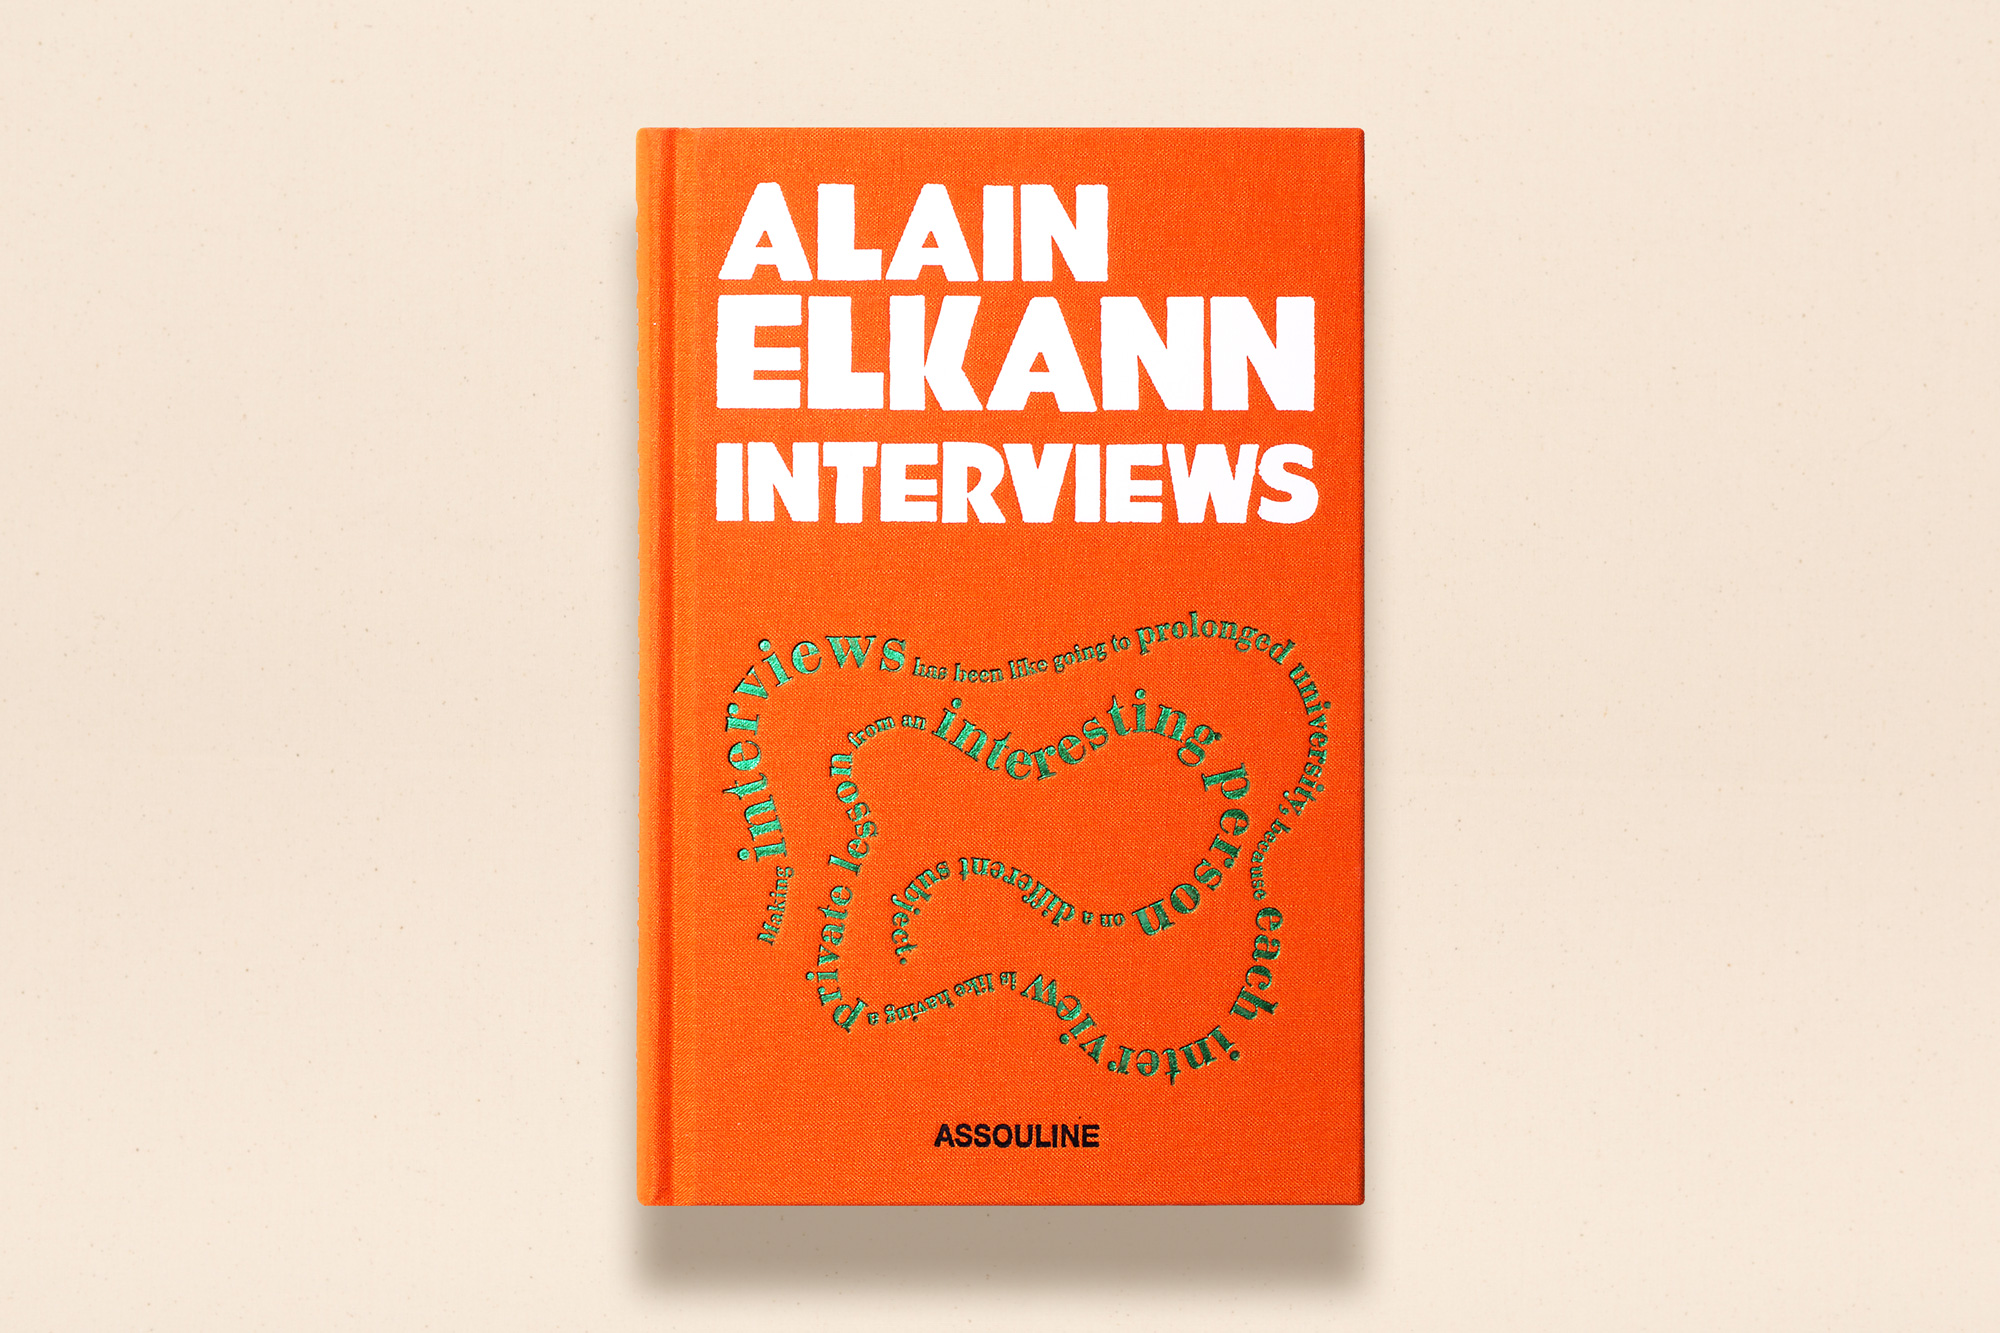 Alain-Elkann-Interviews